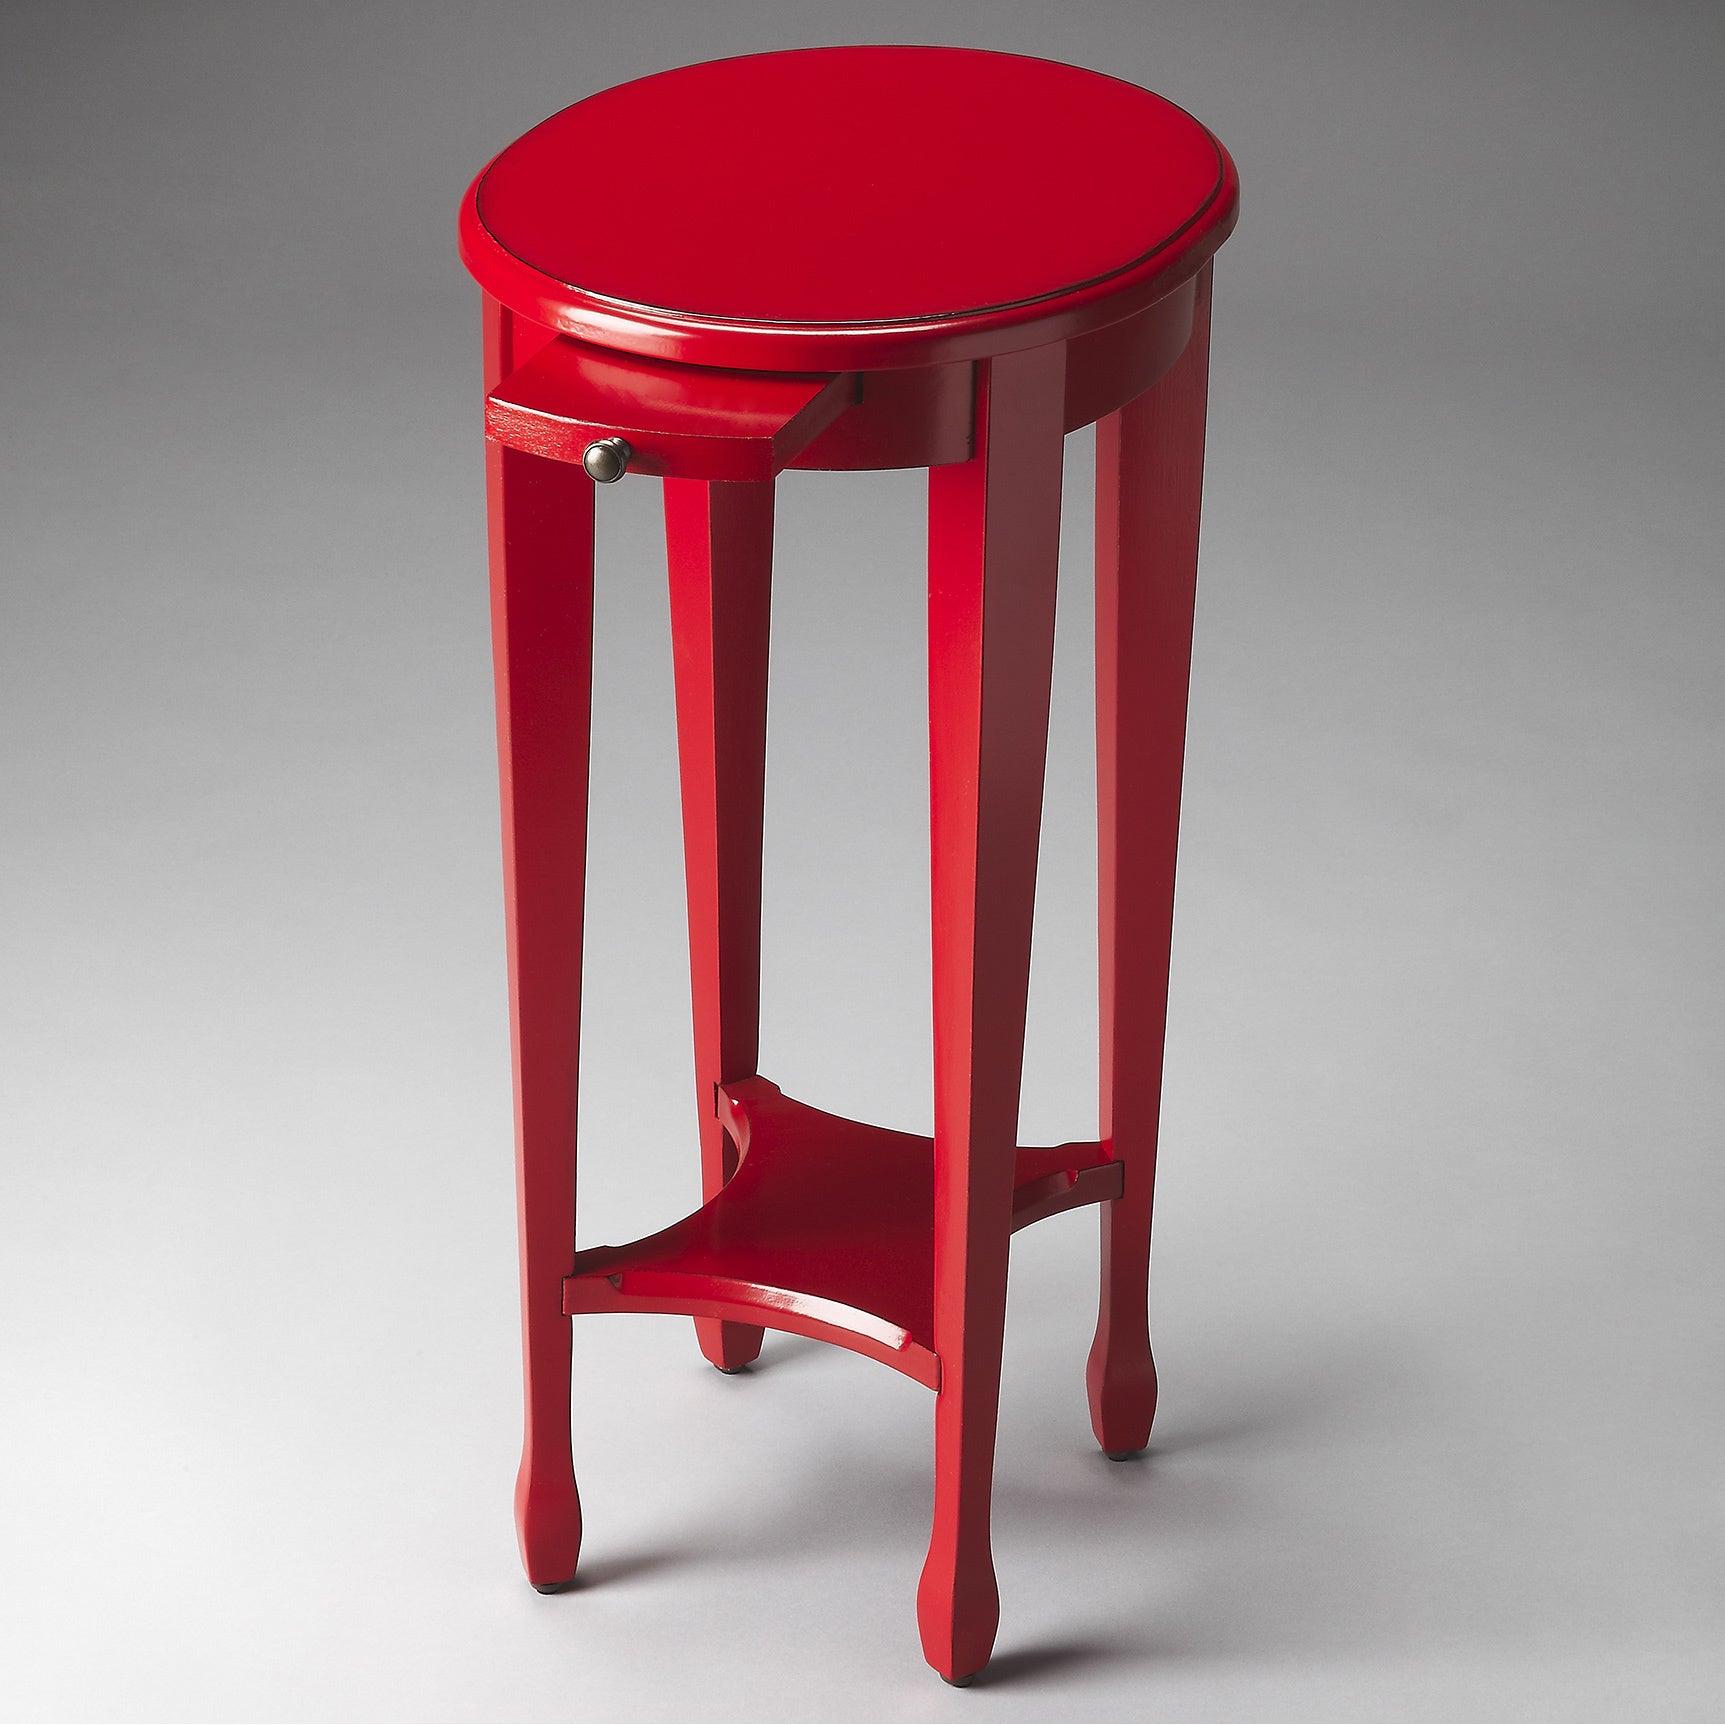 Shop handmade butler arielle red round end table china free shipping today overstock com 11152143